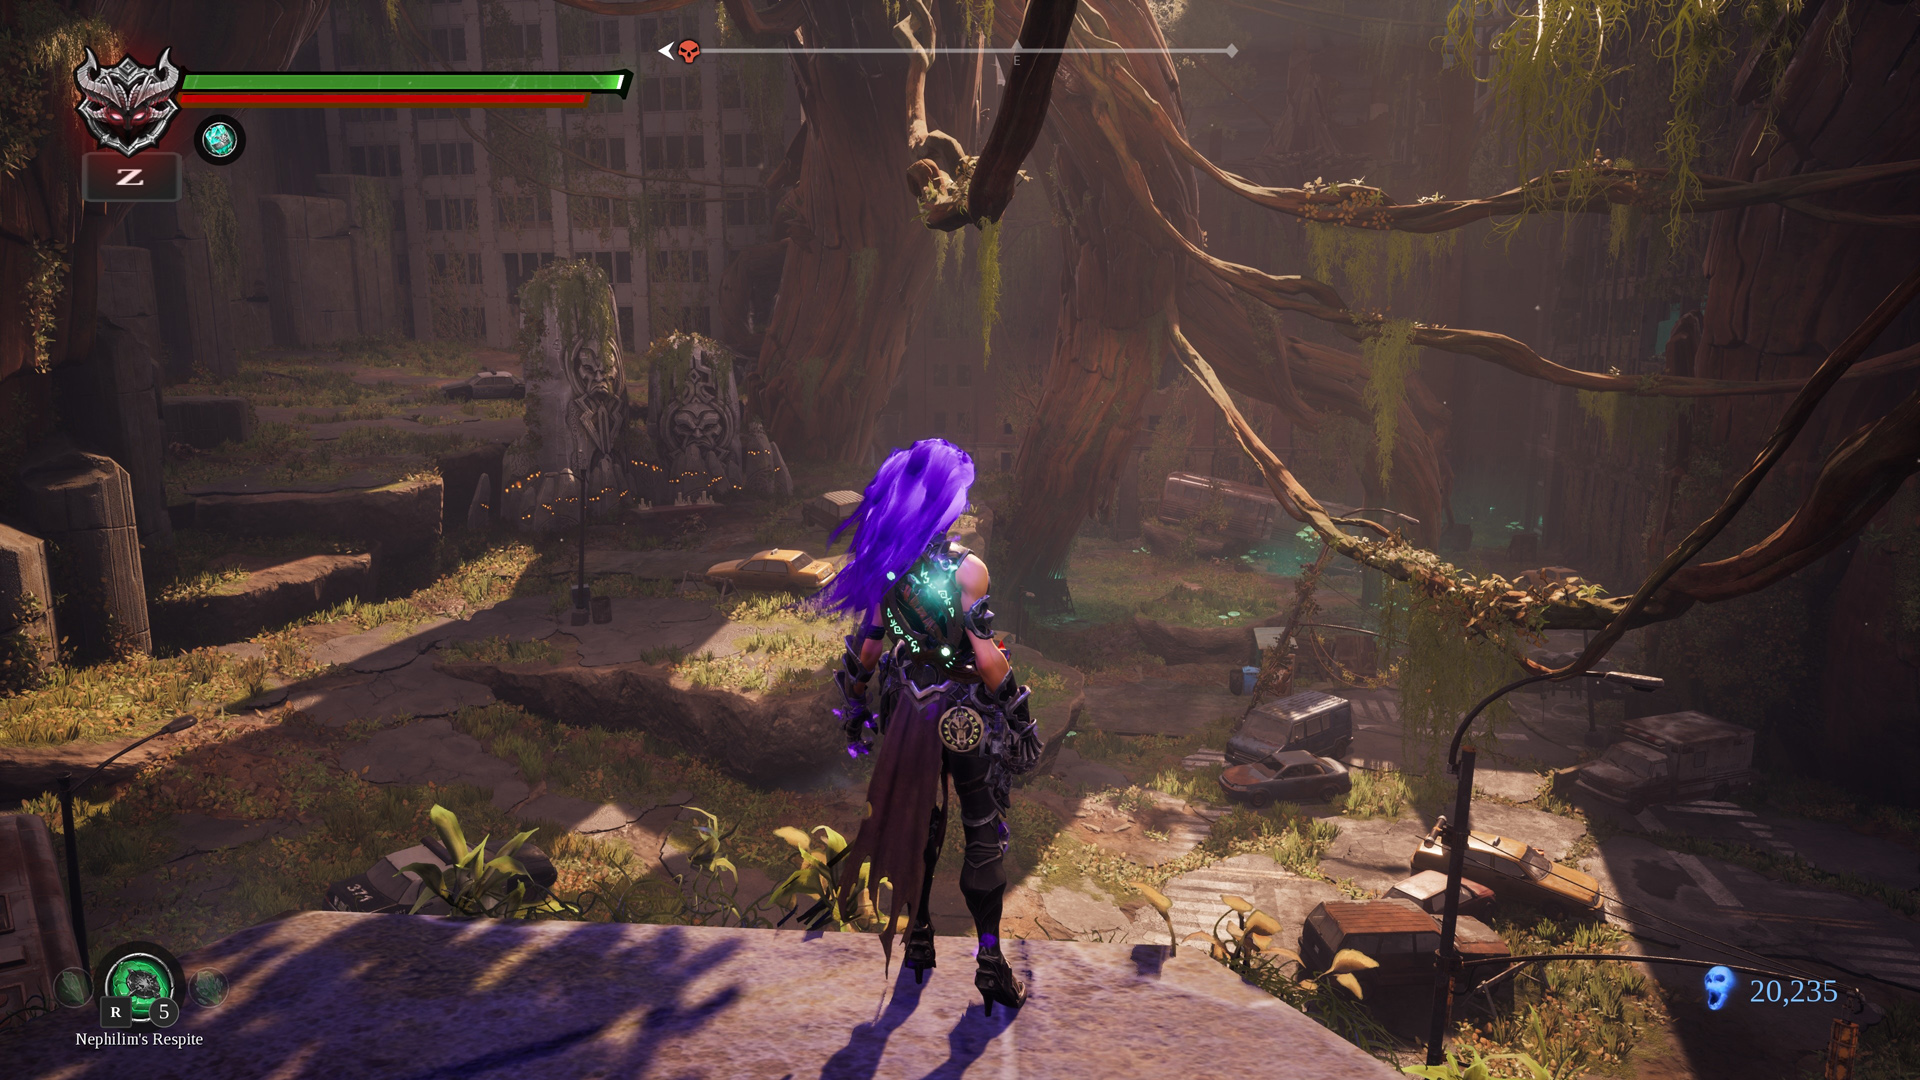 Скриншот *Darksiders III - Digital Deluxe Edition[PS4] 6.72 / 7.02 [EUR] (2018) [Русский] (v1.11)*